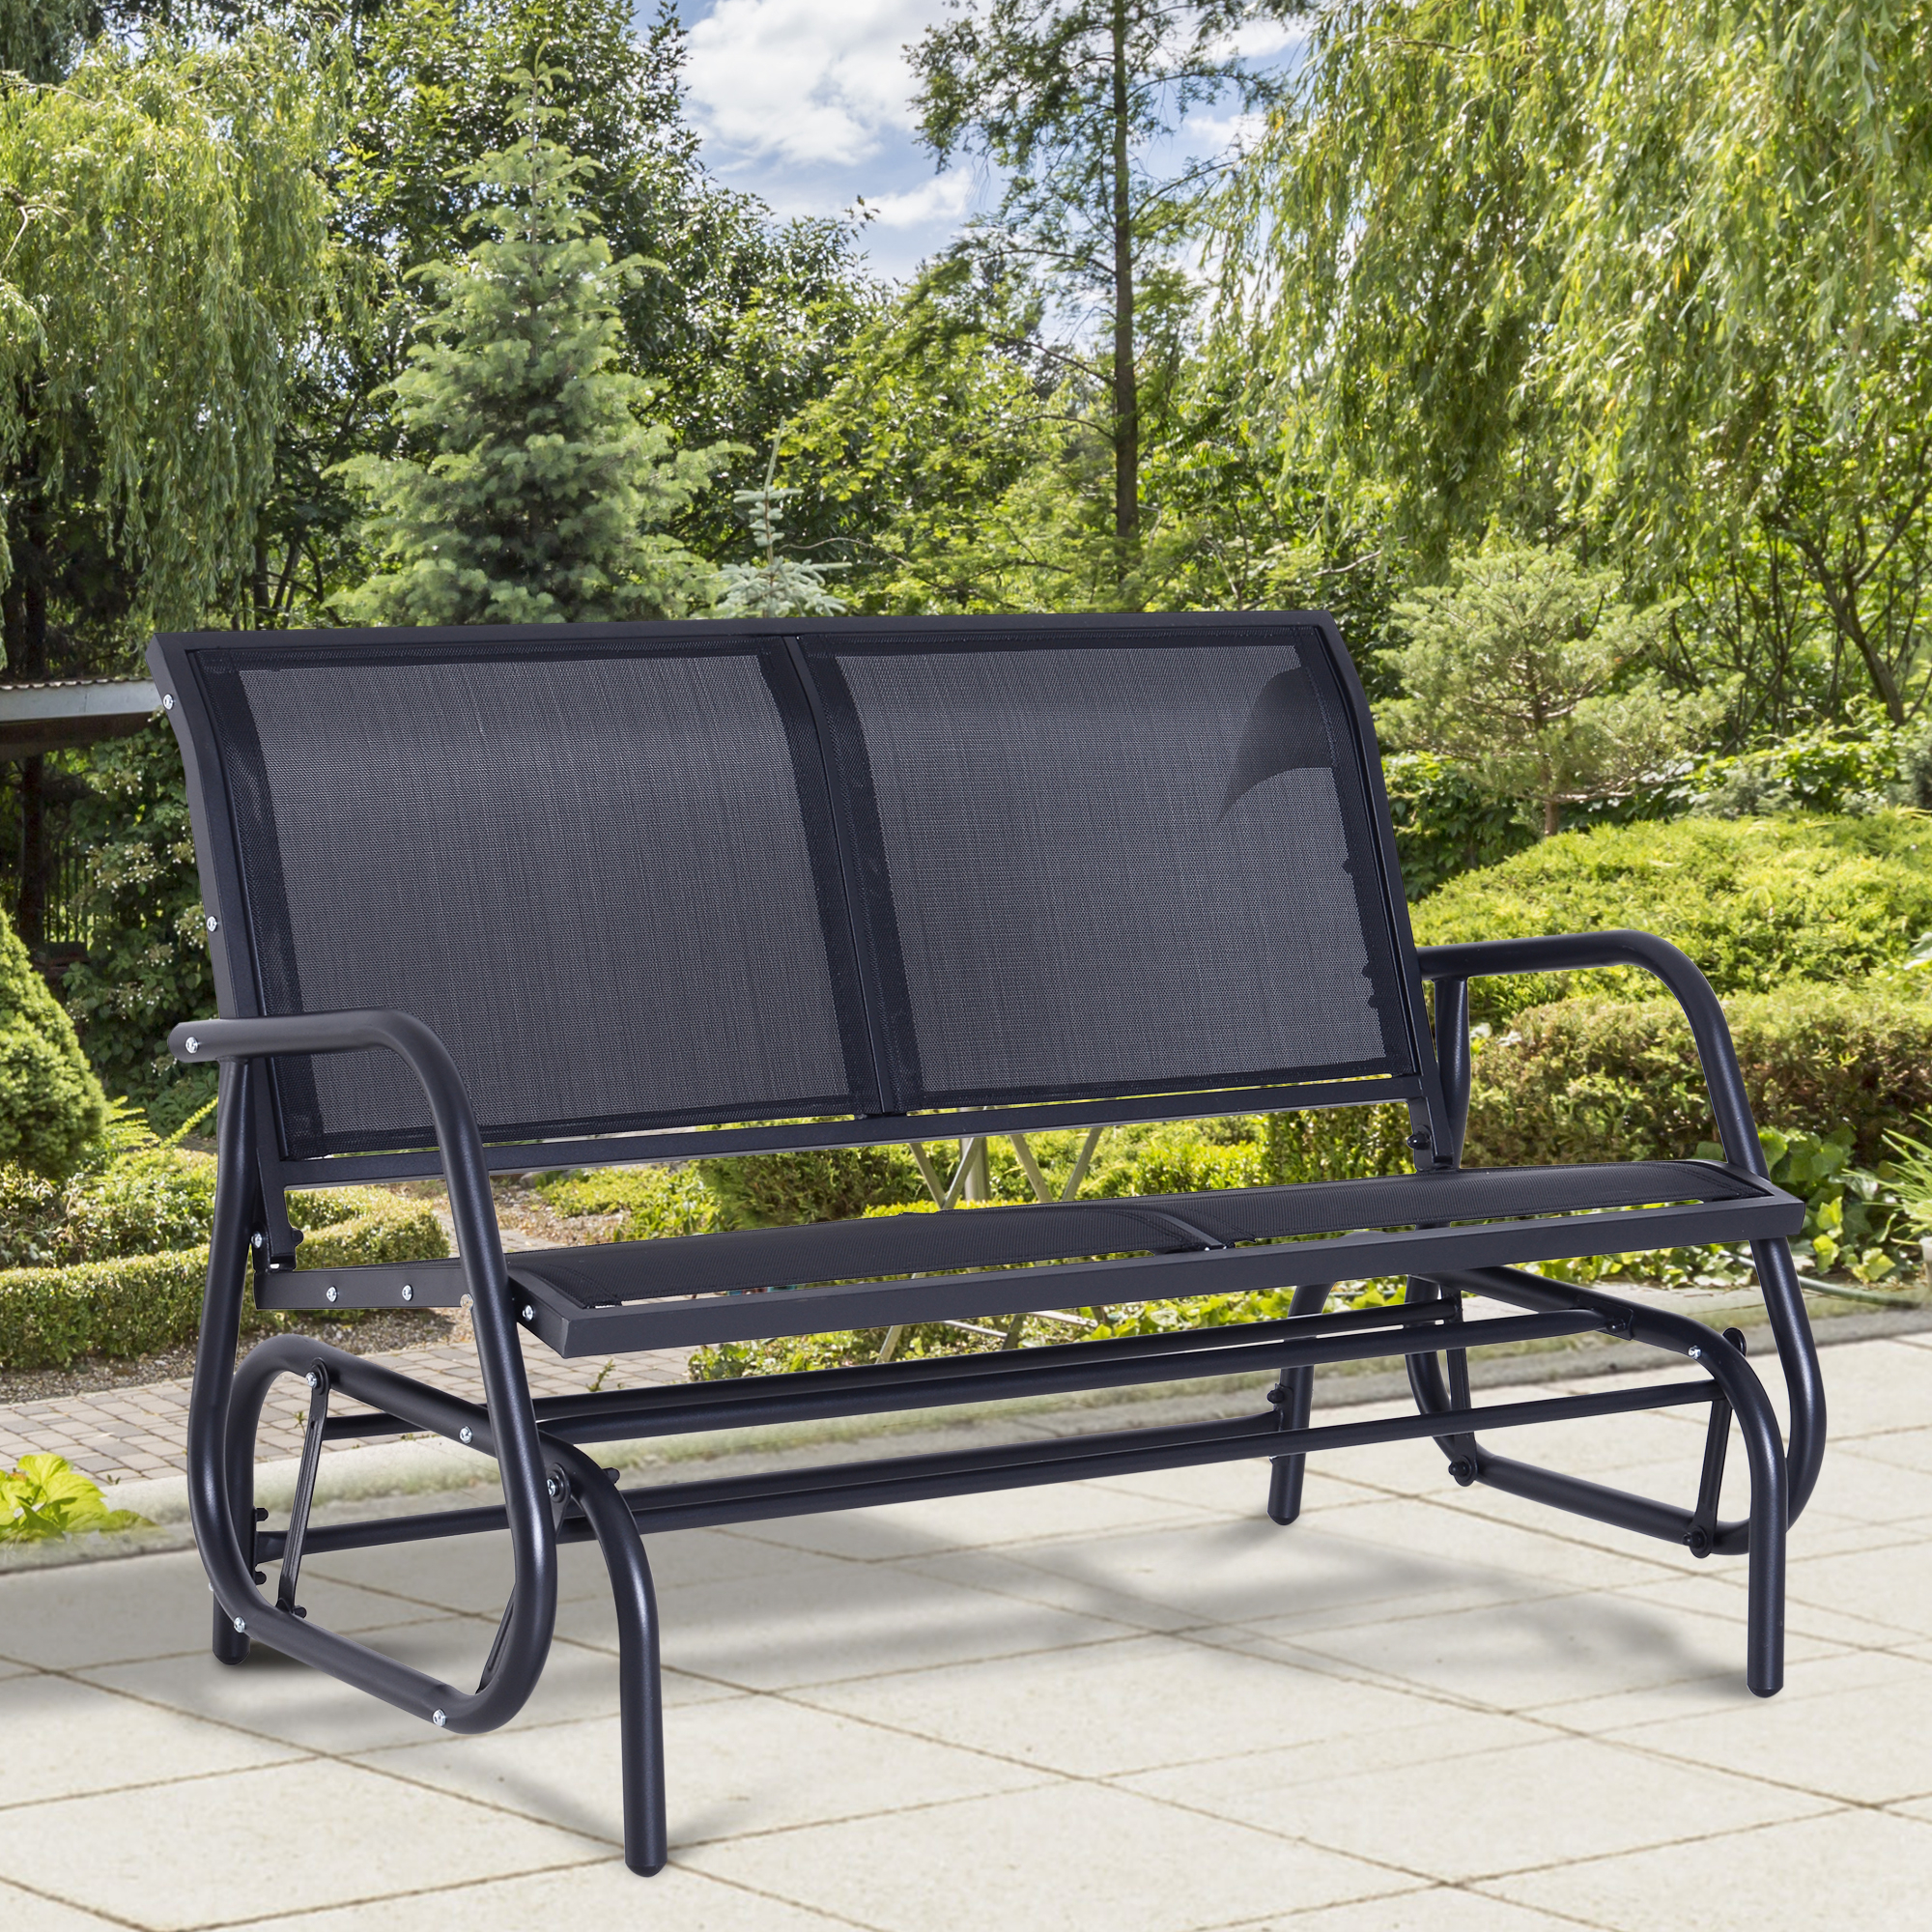 Details About Outsunny 2 Person Patio Glider Bench Swing Chair Garden Mesh  Rocker Steel Black Intended For 2 Person Black Steel Outdoor Swings (Image 8 of 25)